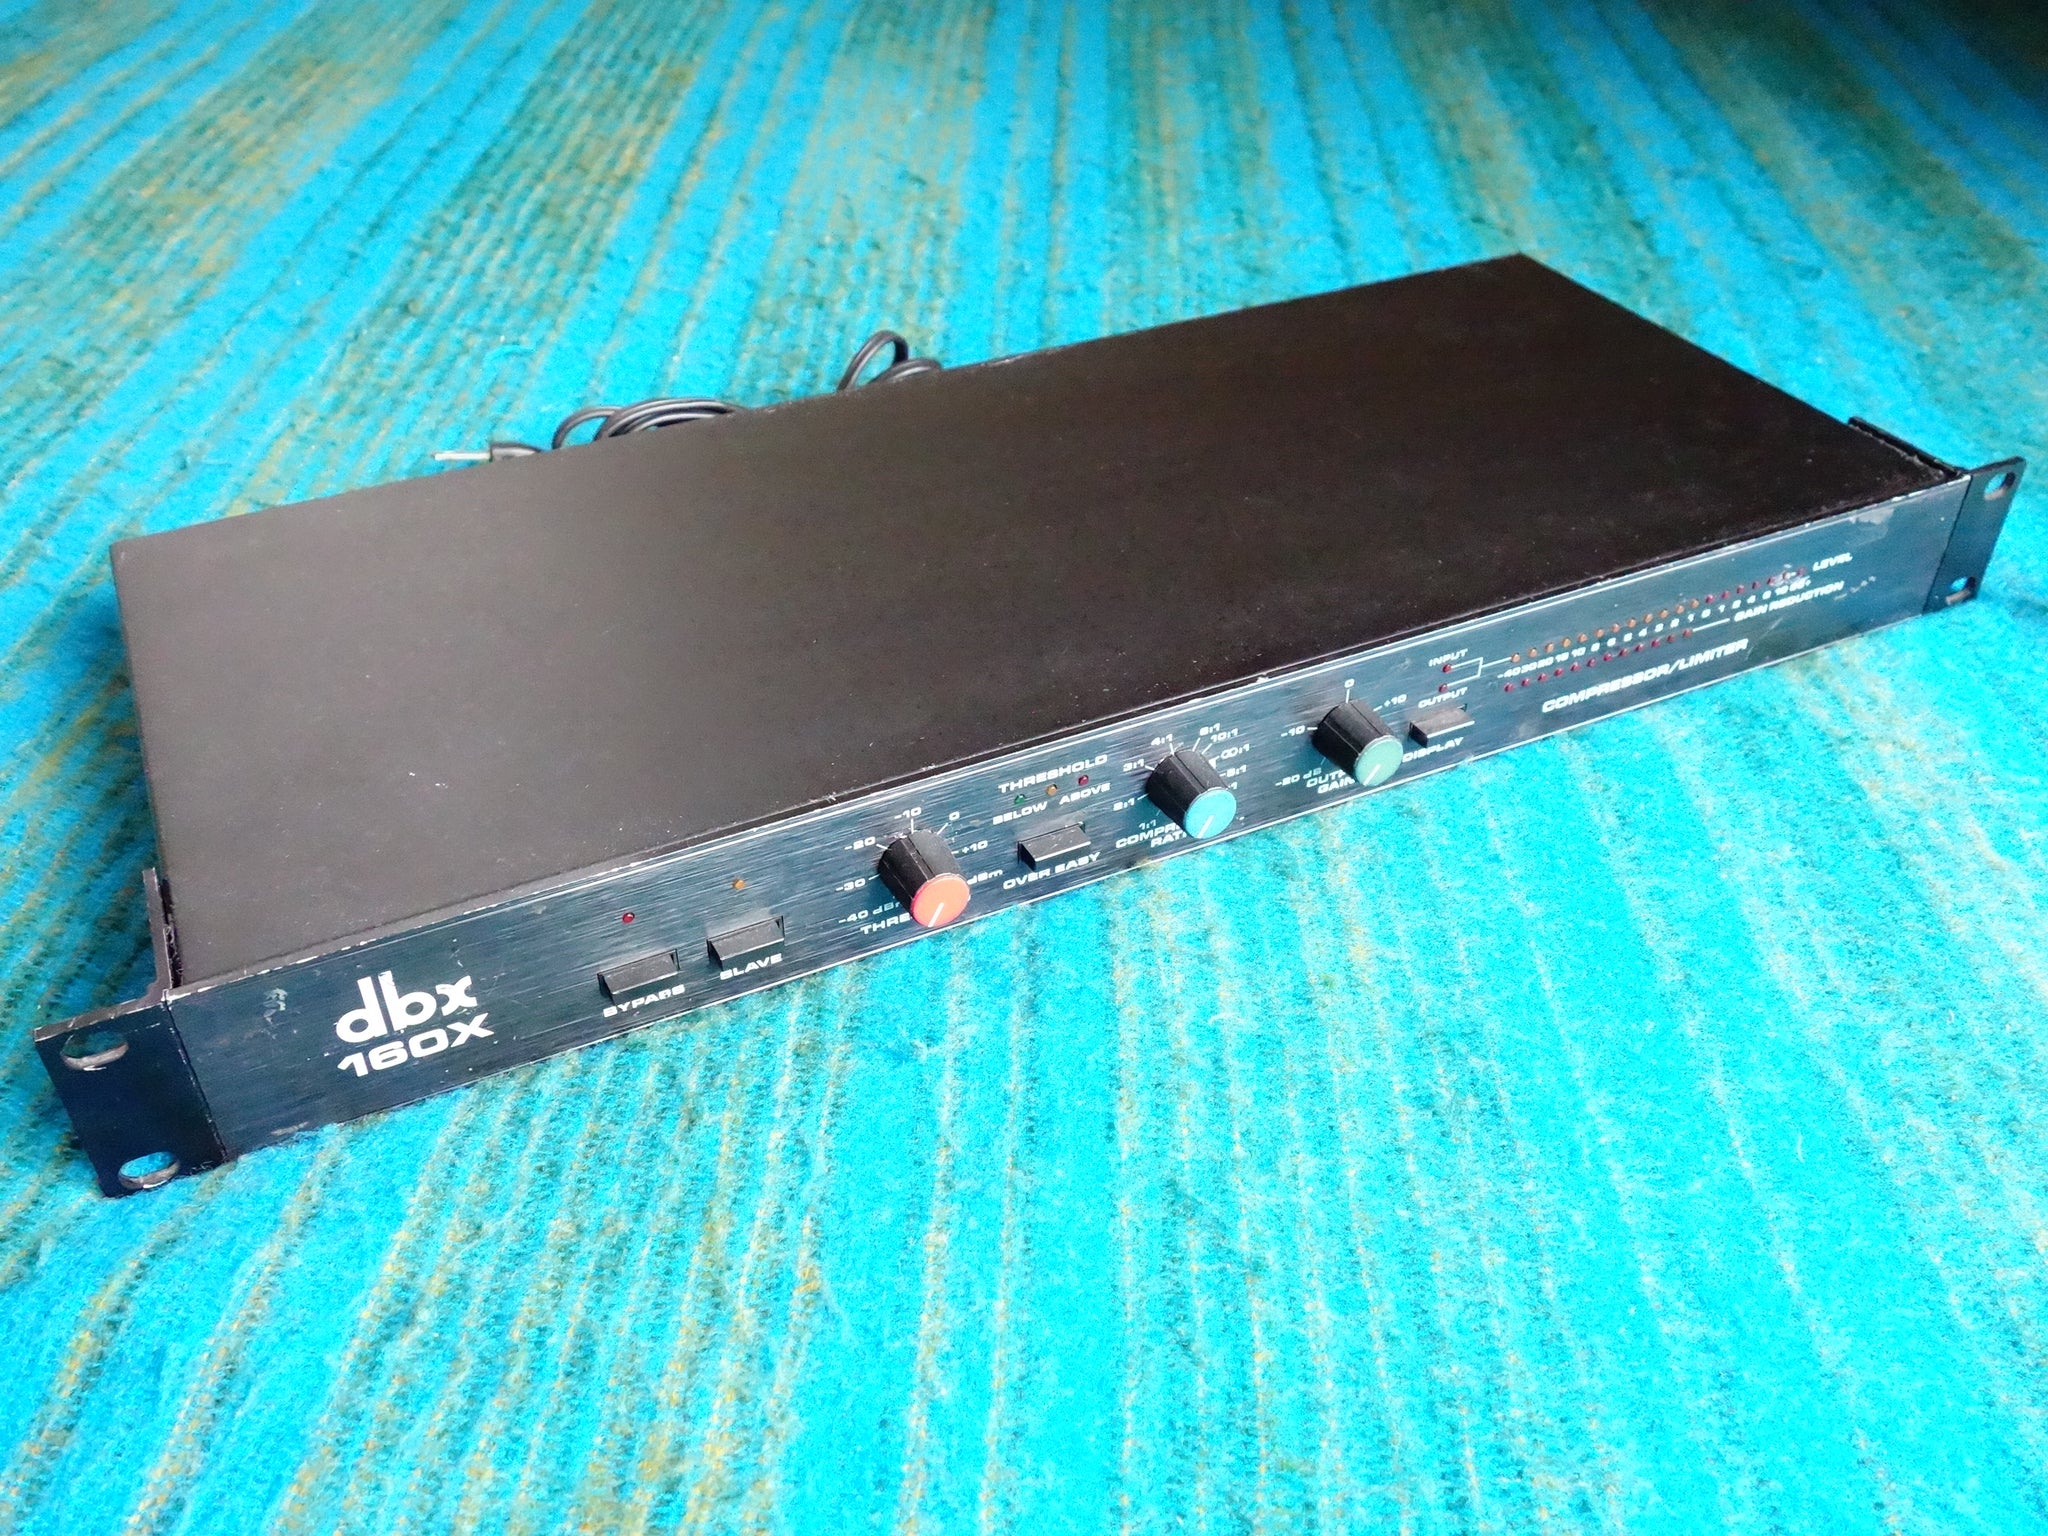 DBX 160X Compressor / Limiter - Vintage Compressor Made in Japan Model - E296